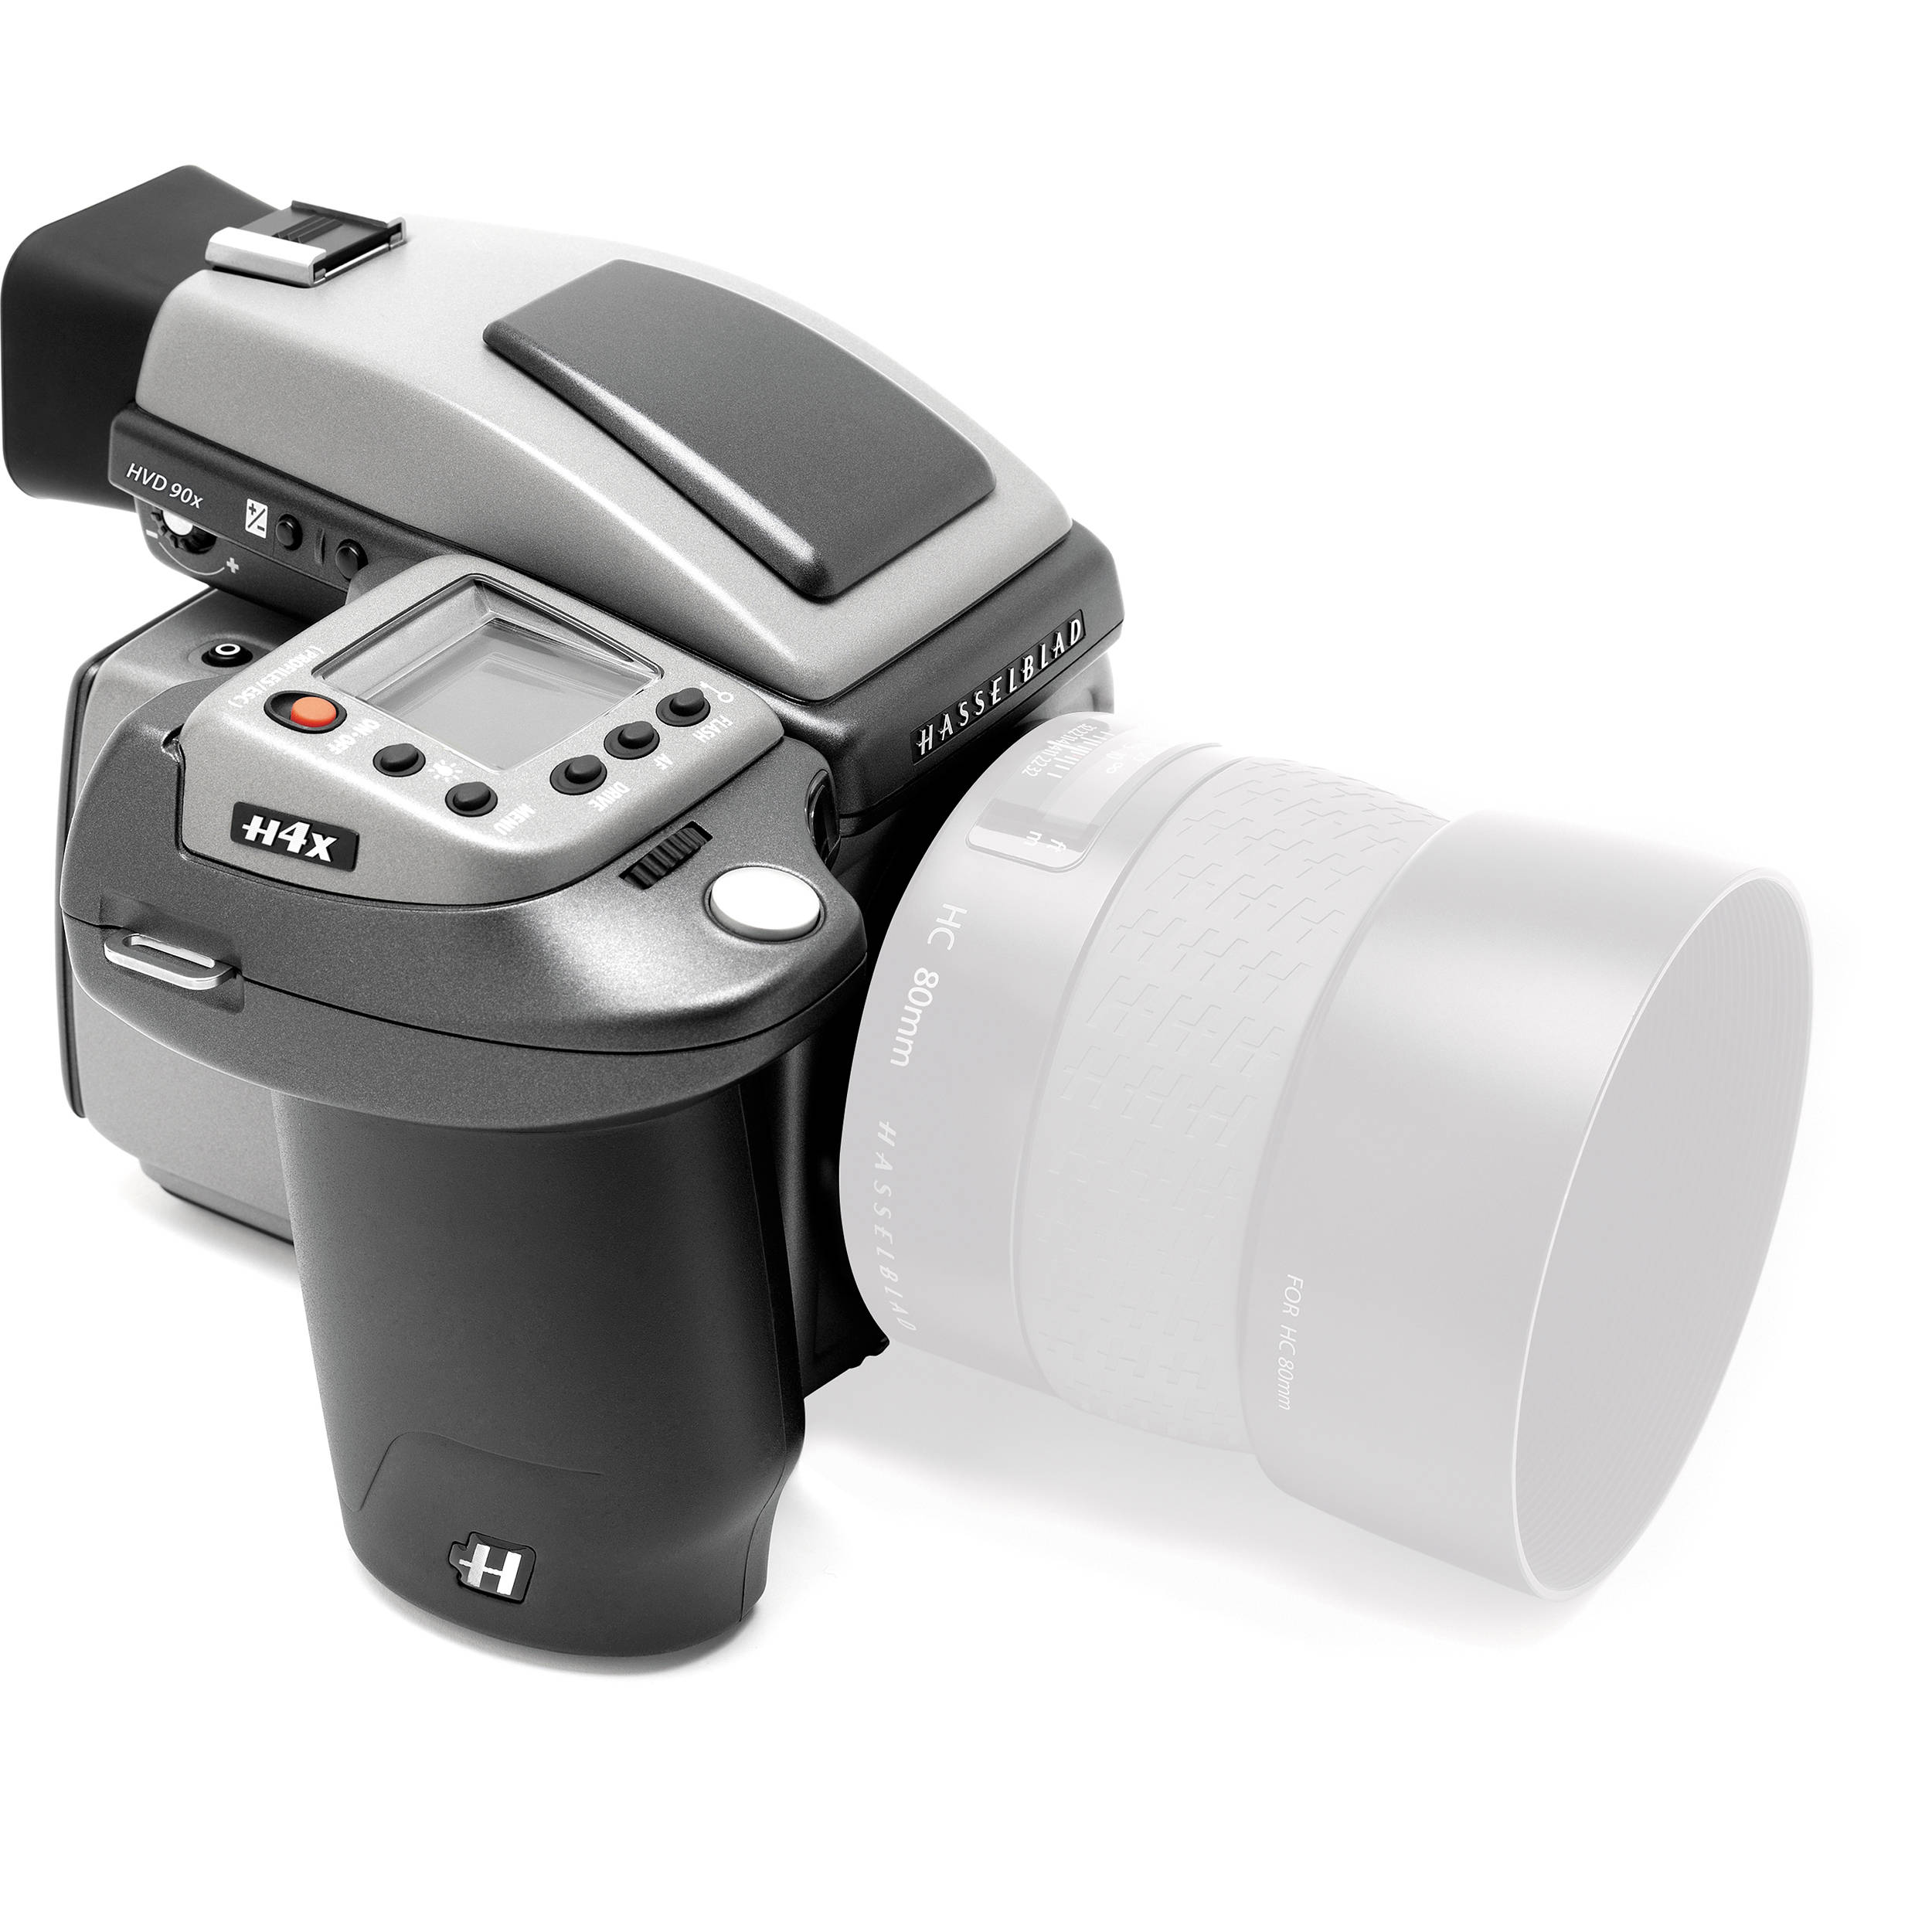 NEW DRIVERS: HASSELBLAD HVD90X CAMERA VIEWFINDER